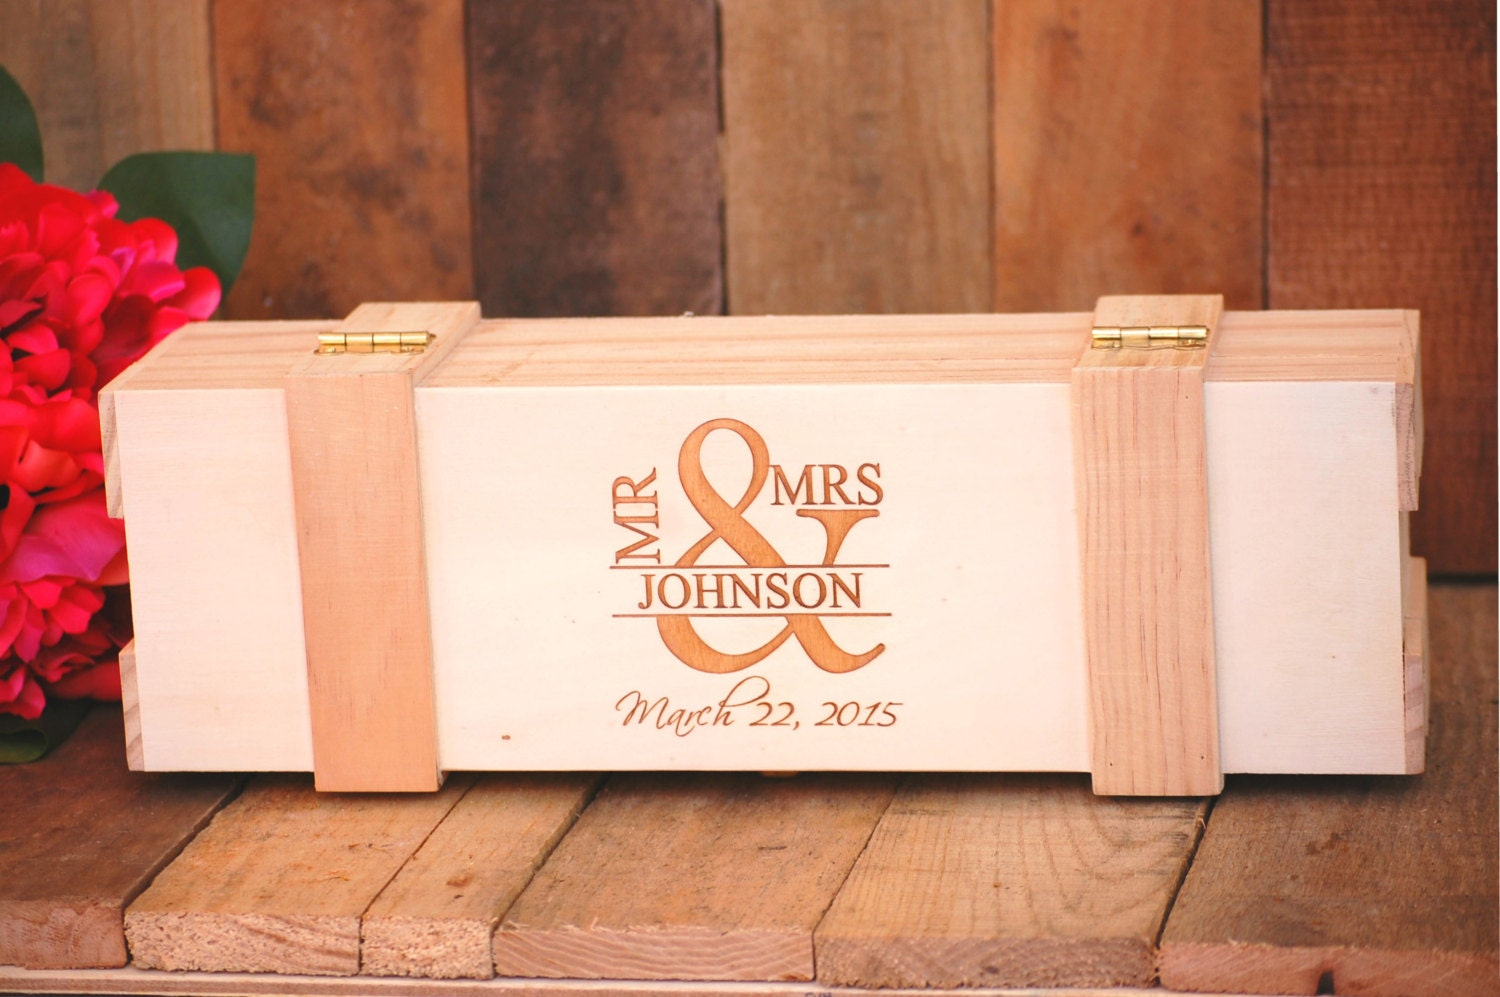 Wine Box Personalized Wedding Ceremony Couples Gift Champagne Bride And Groom Mr Mrs His Hers Set Honeymoon